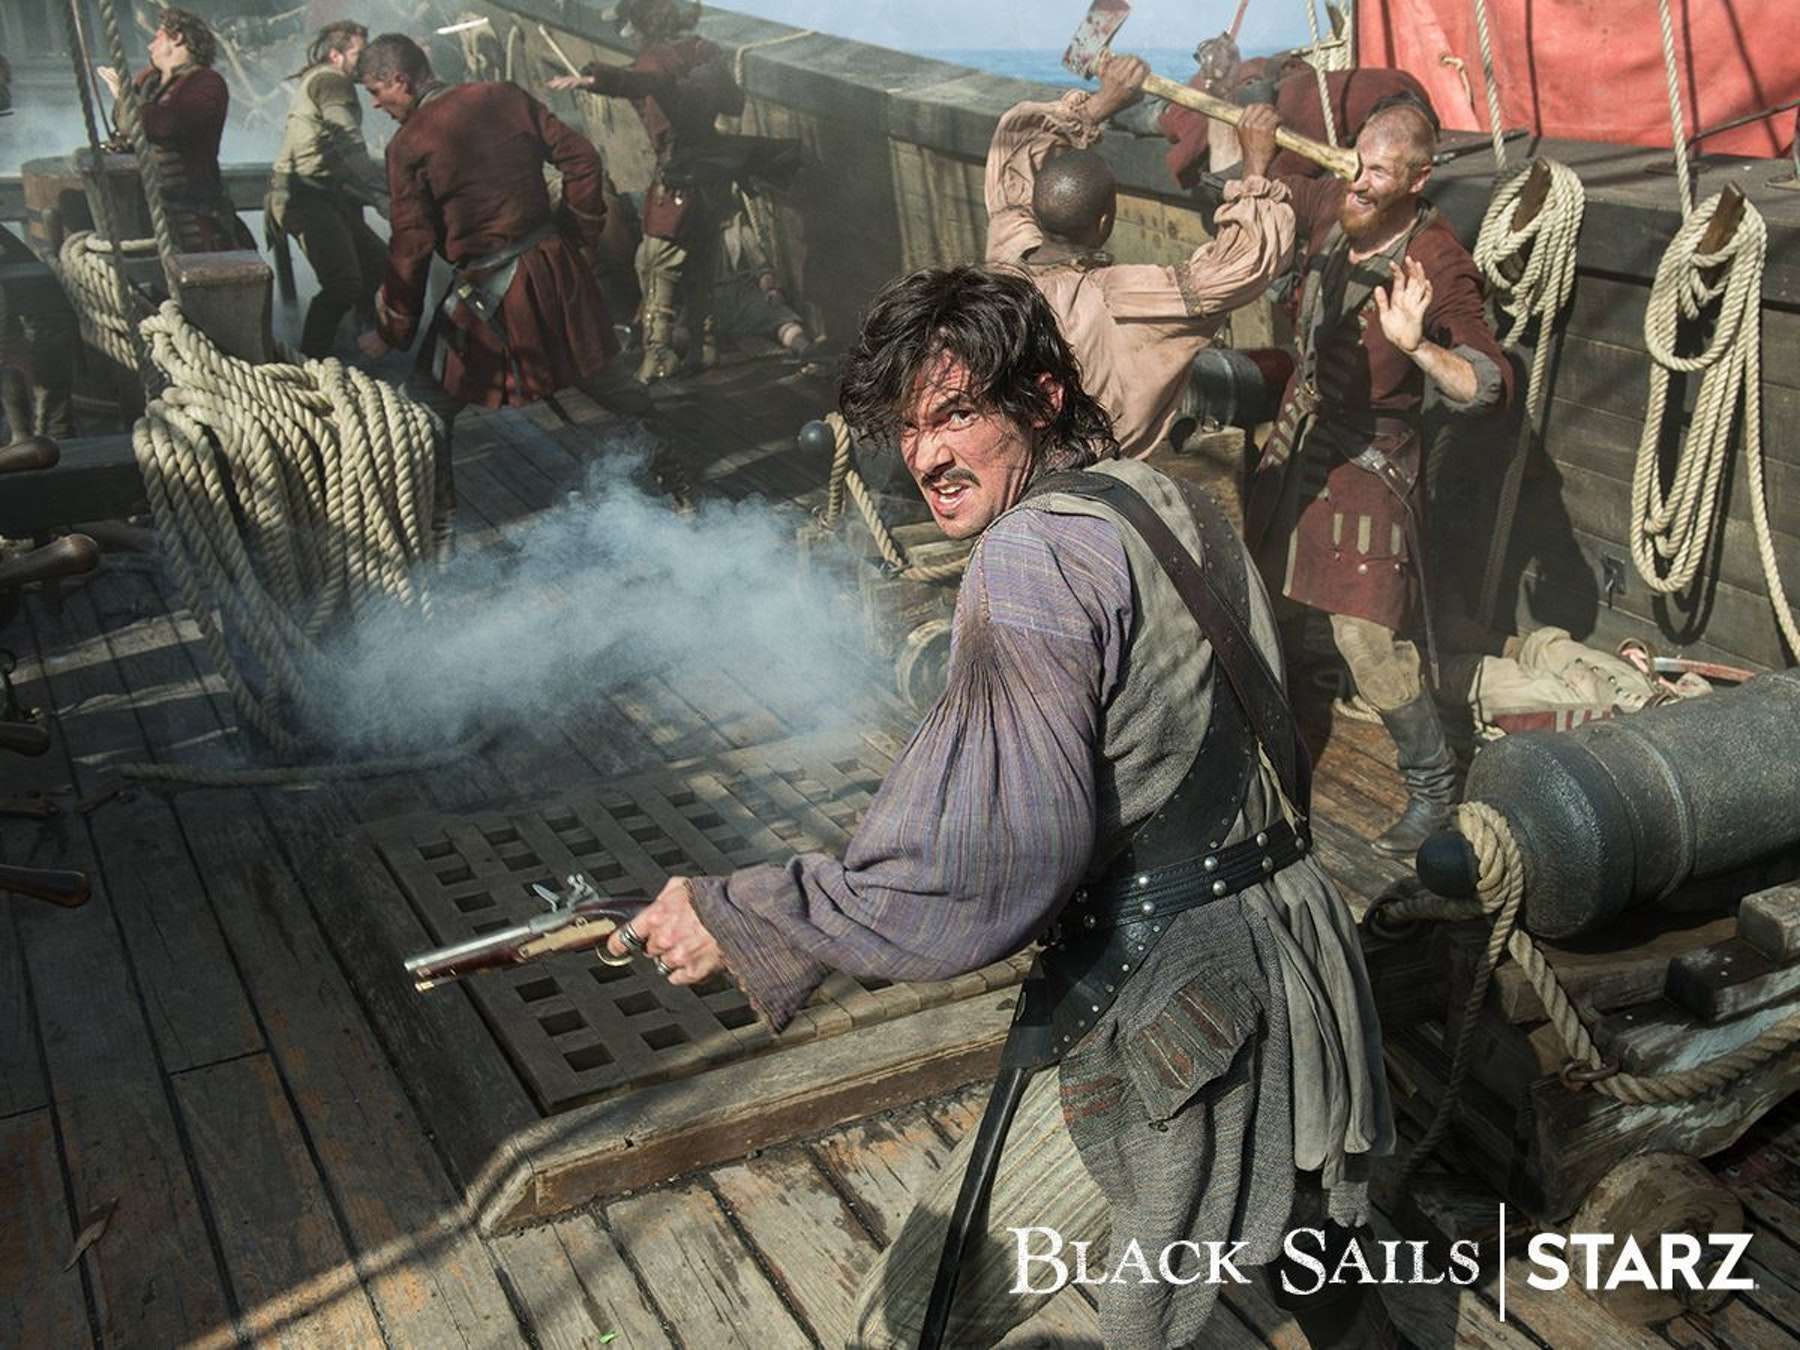 Video Interview: Toby Schmitz Talks 'Black Sails' Season 4